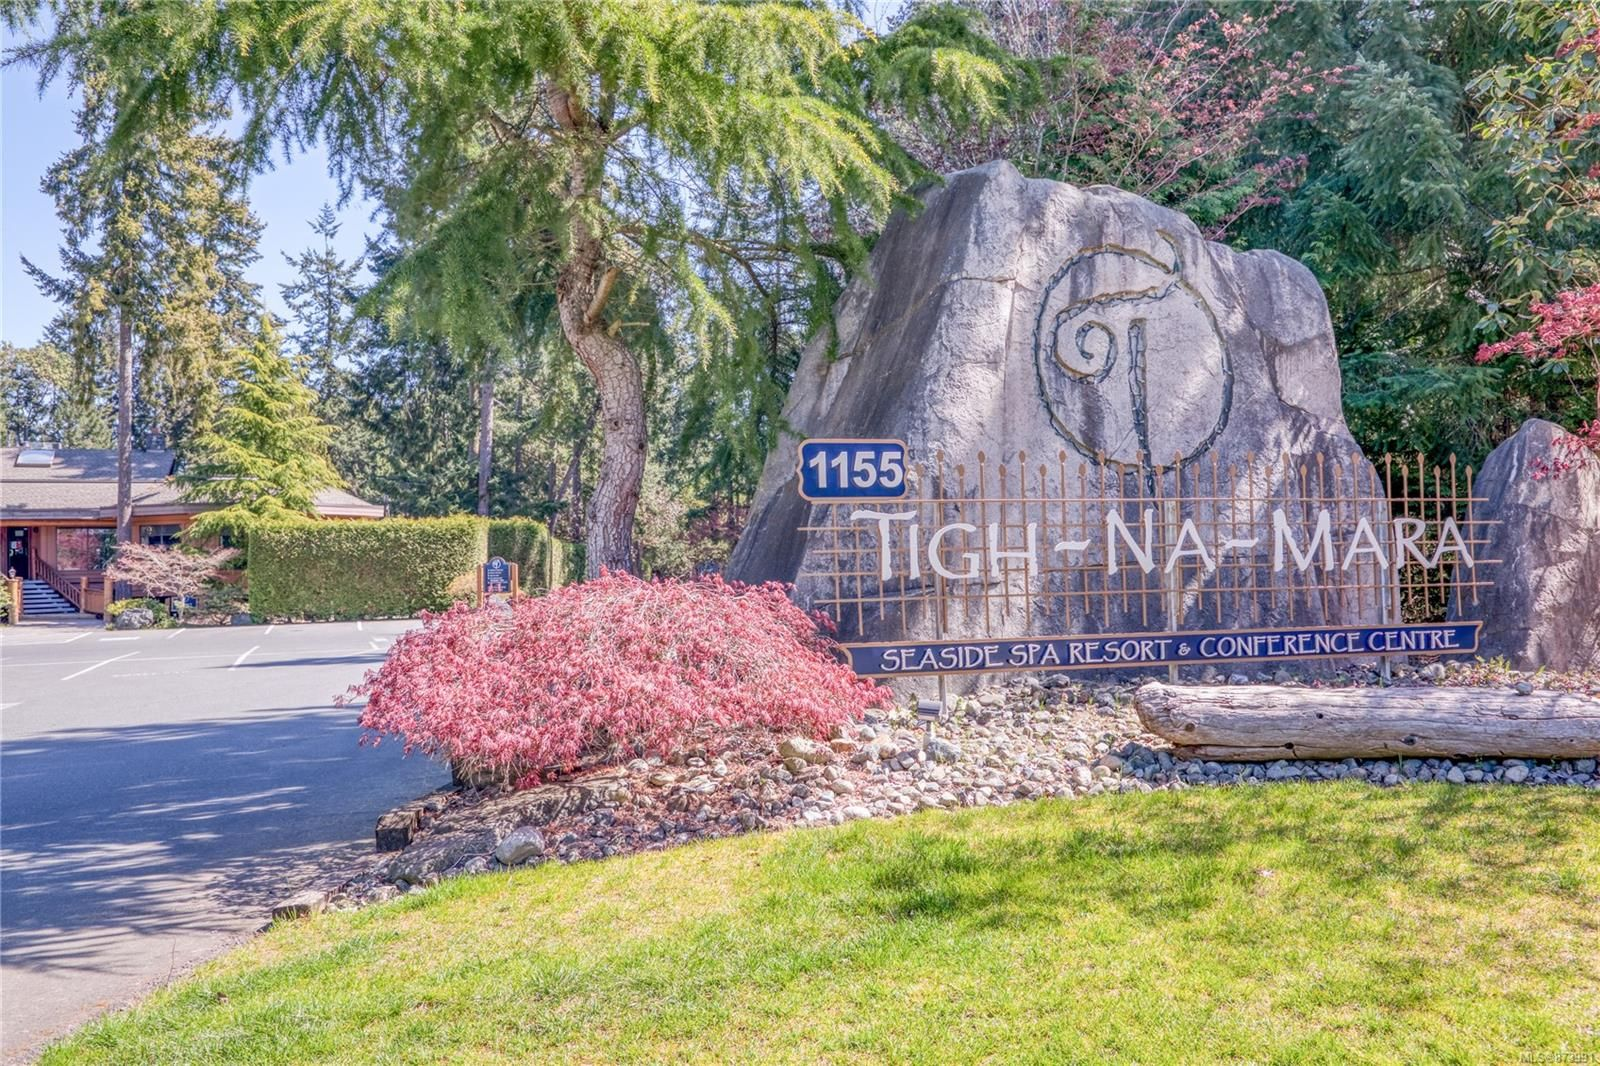 Main Photo: 112 1155 Resort Dr in : PQ Parksville Condo for sale (Parksville/Qualicum)  : MLS®# 873991